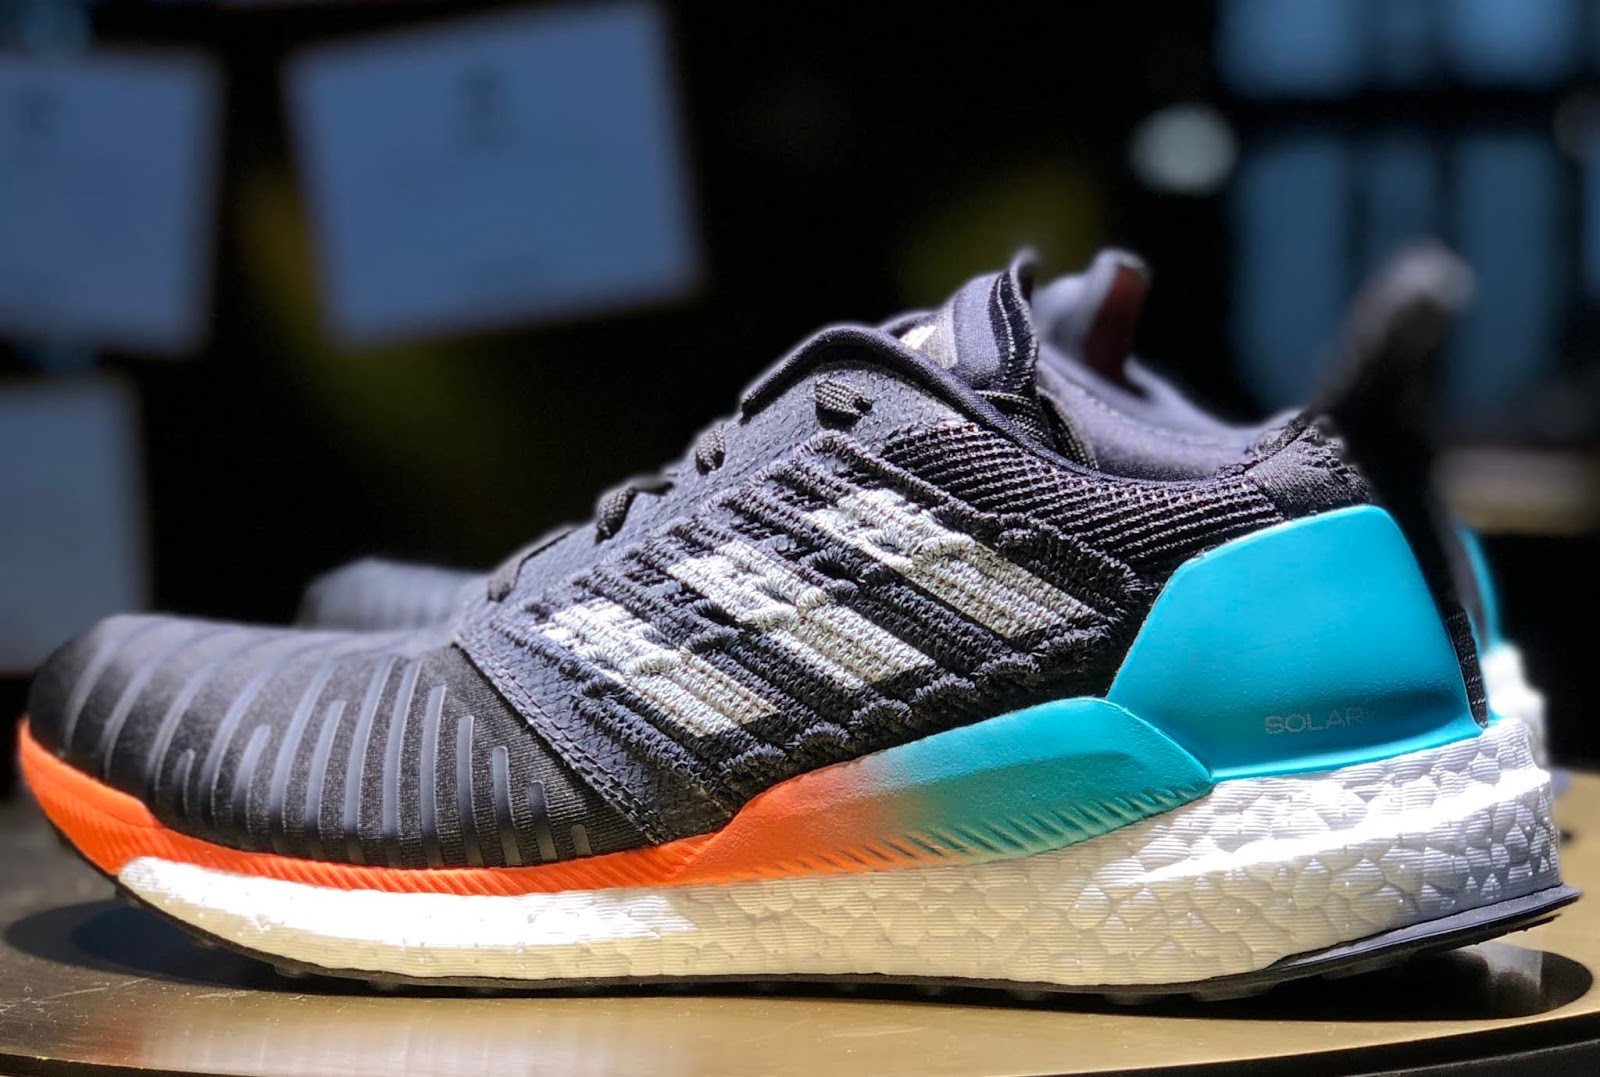 premium selection d2842 49b81 The adidas Solar Boost, was inspired, at least in part, by NASA engineering  and is one of the new lightweight running shoes (295 grams - 10.4 ounces in  a ...